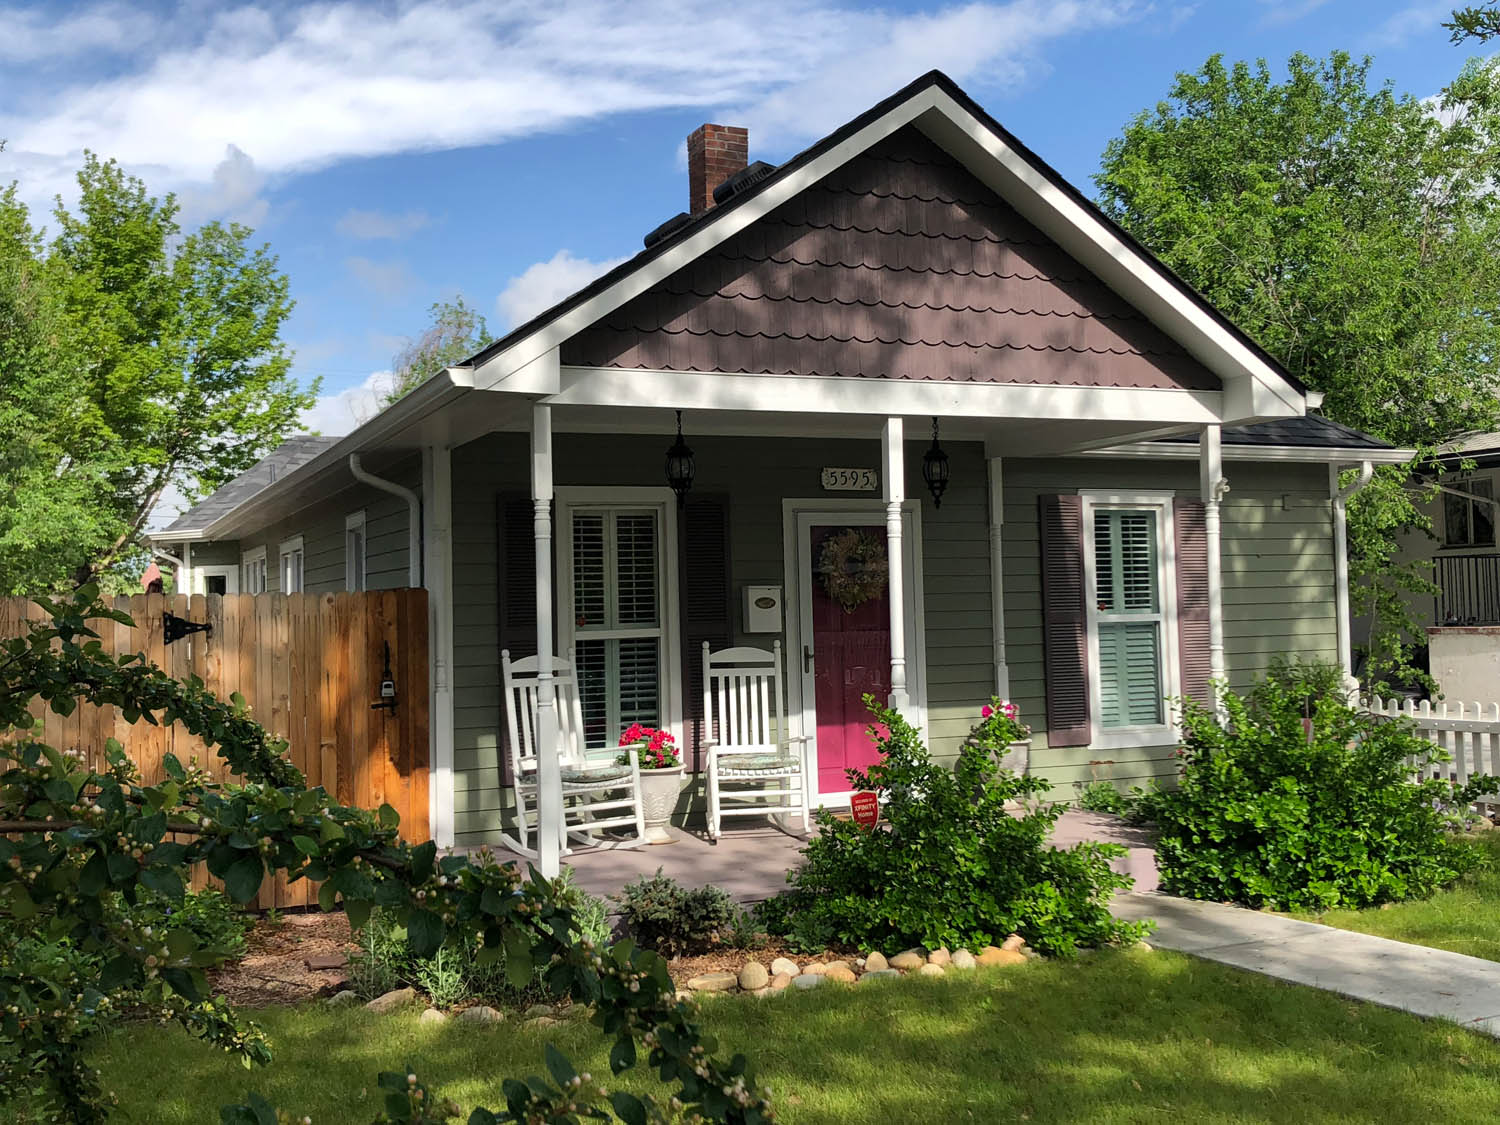 Curtice Cottage in Littleton, Colorado in the spring after remodeling